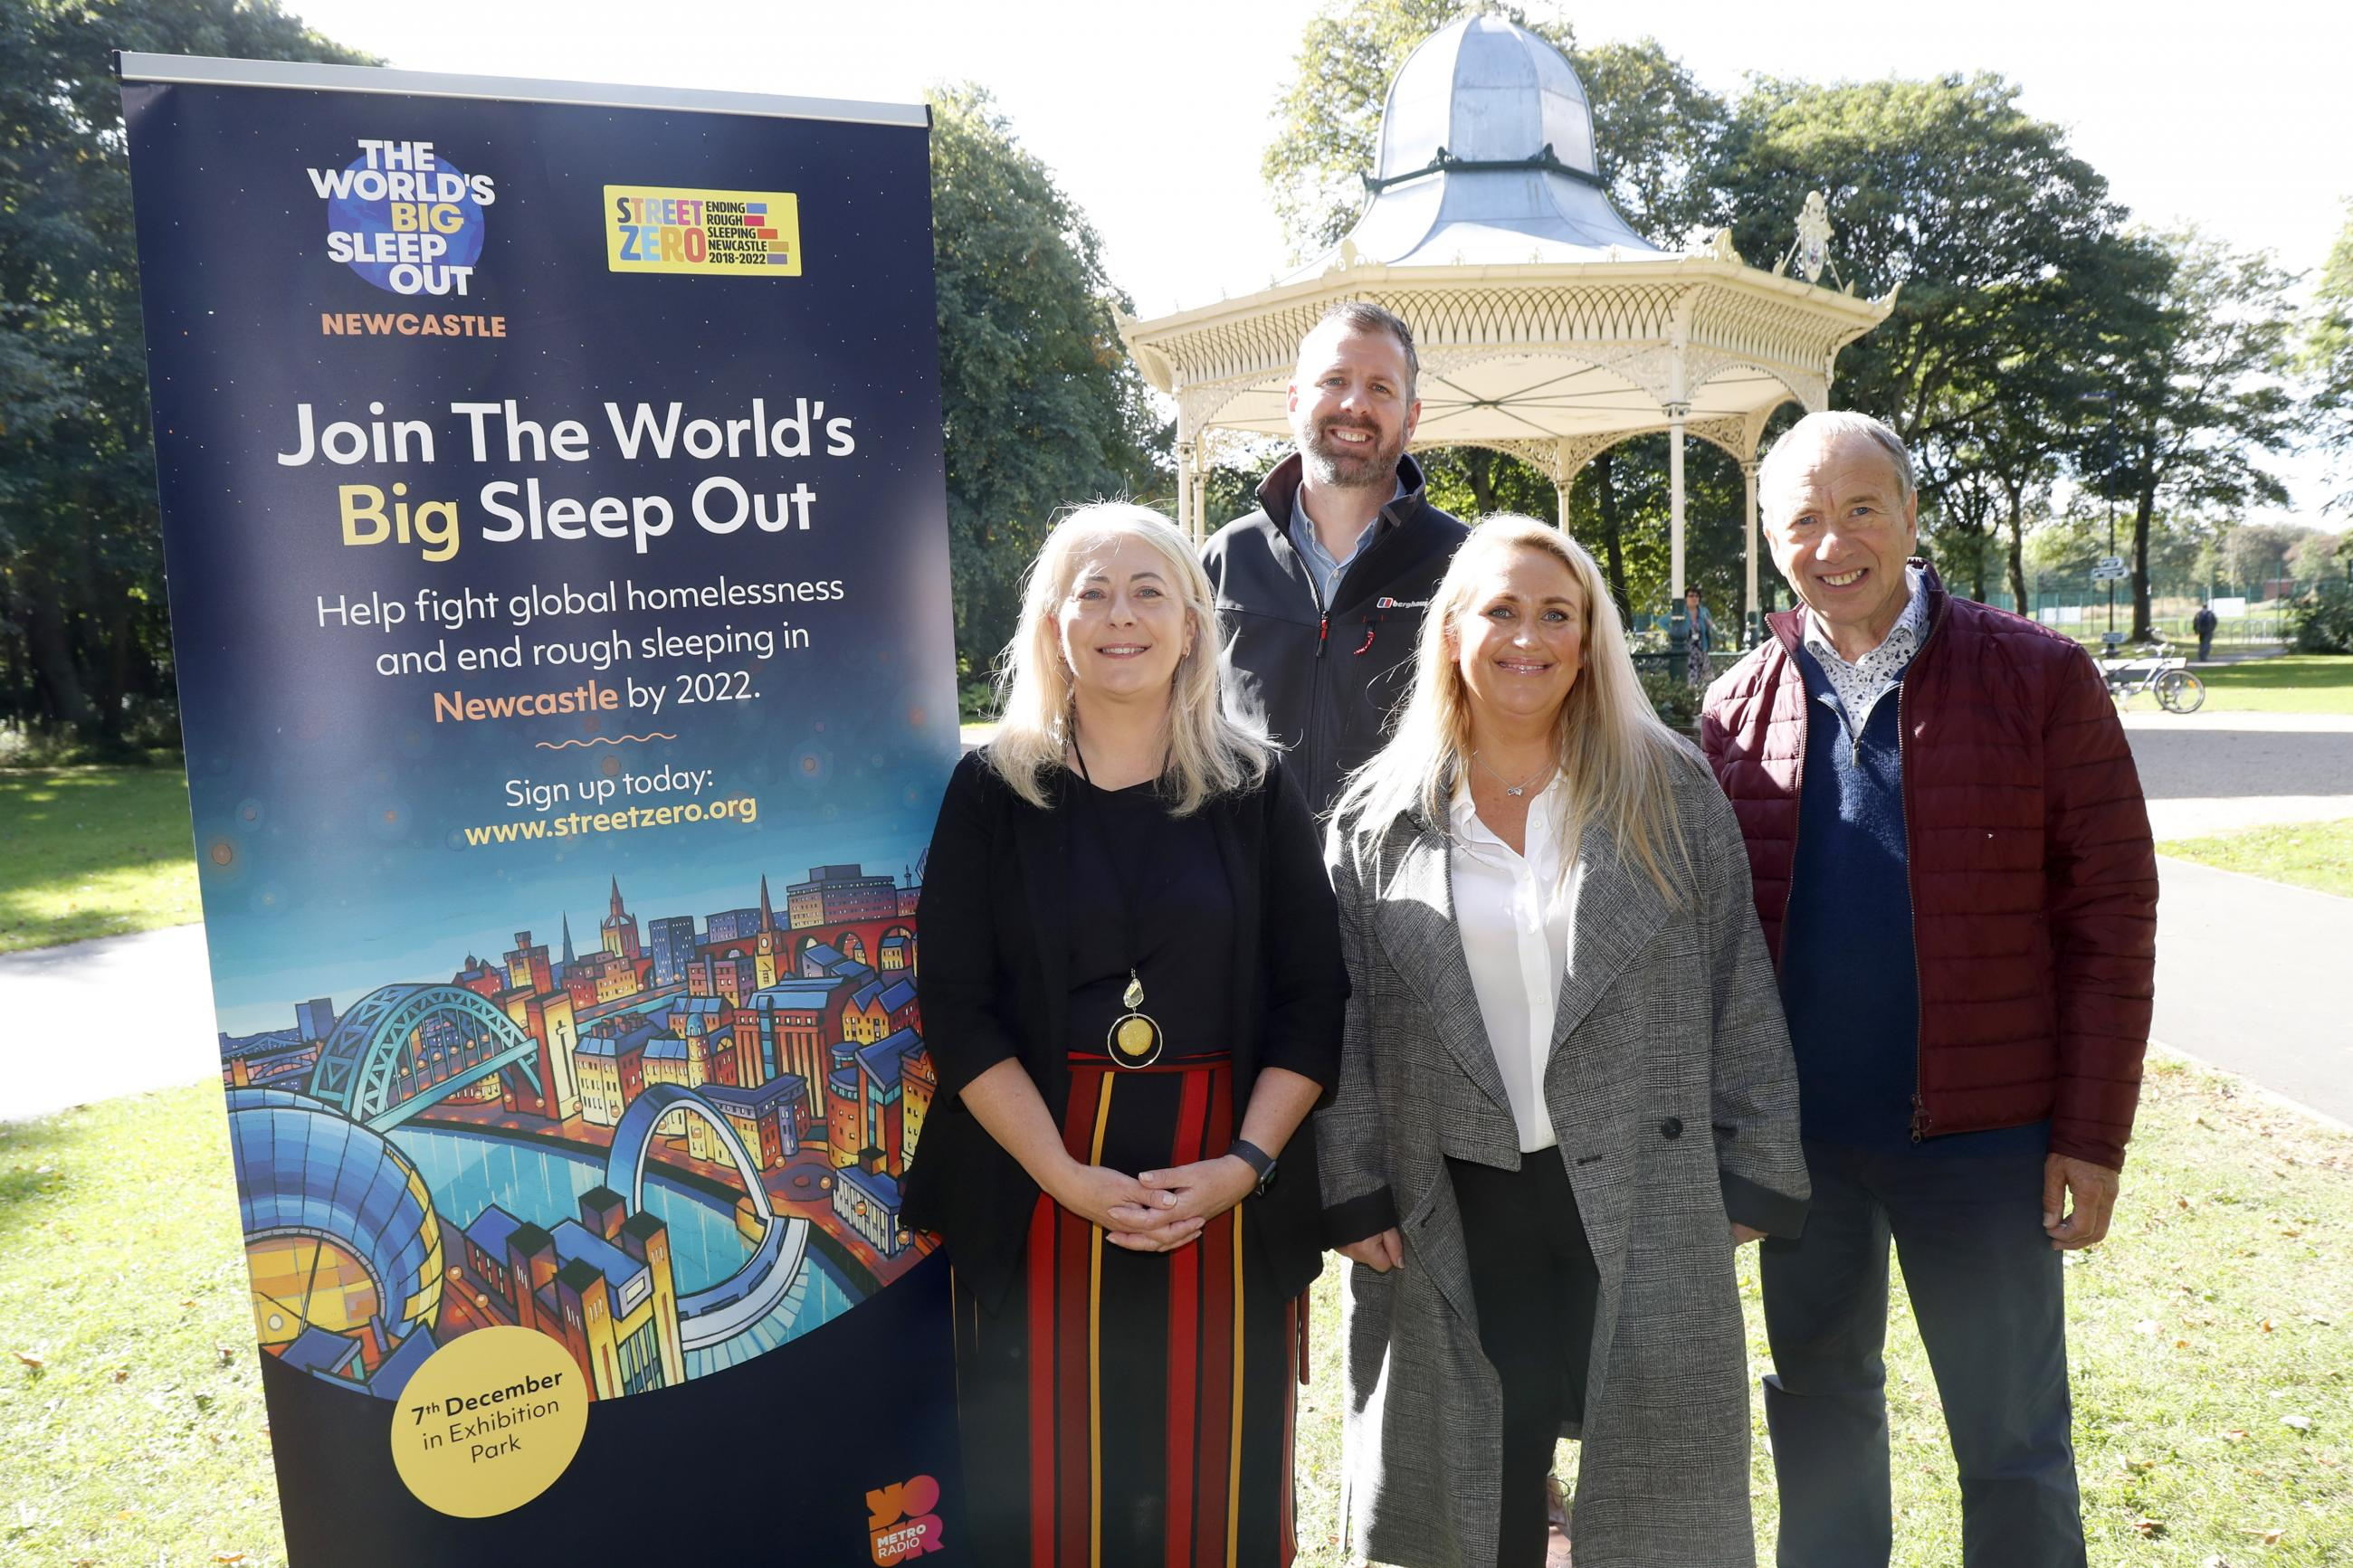 Bob Eldridge, Cllr Linda Hobson, James Cross and Natasha Addis of the World's Big Sleepout